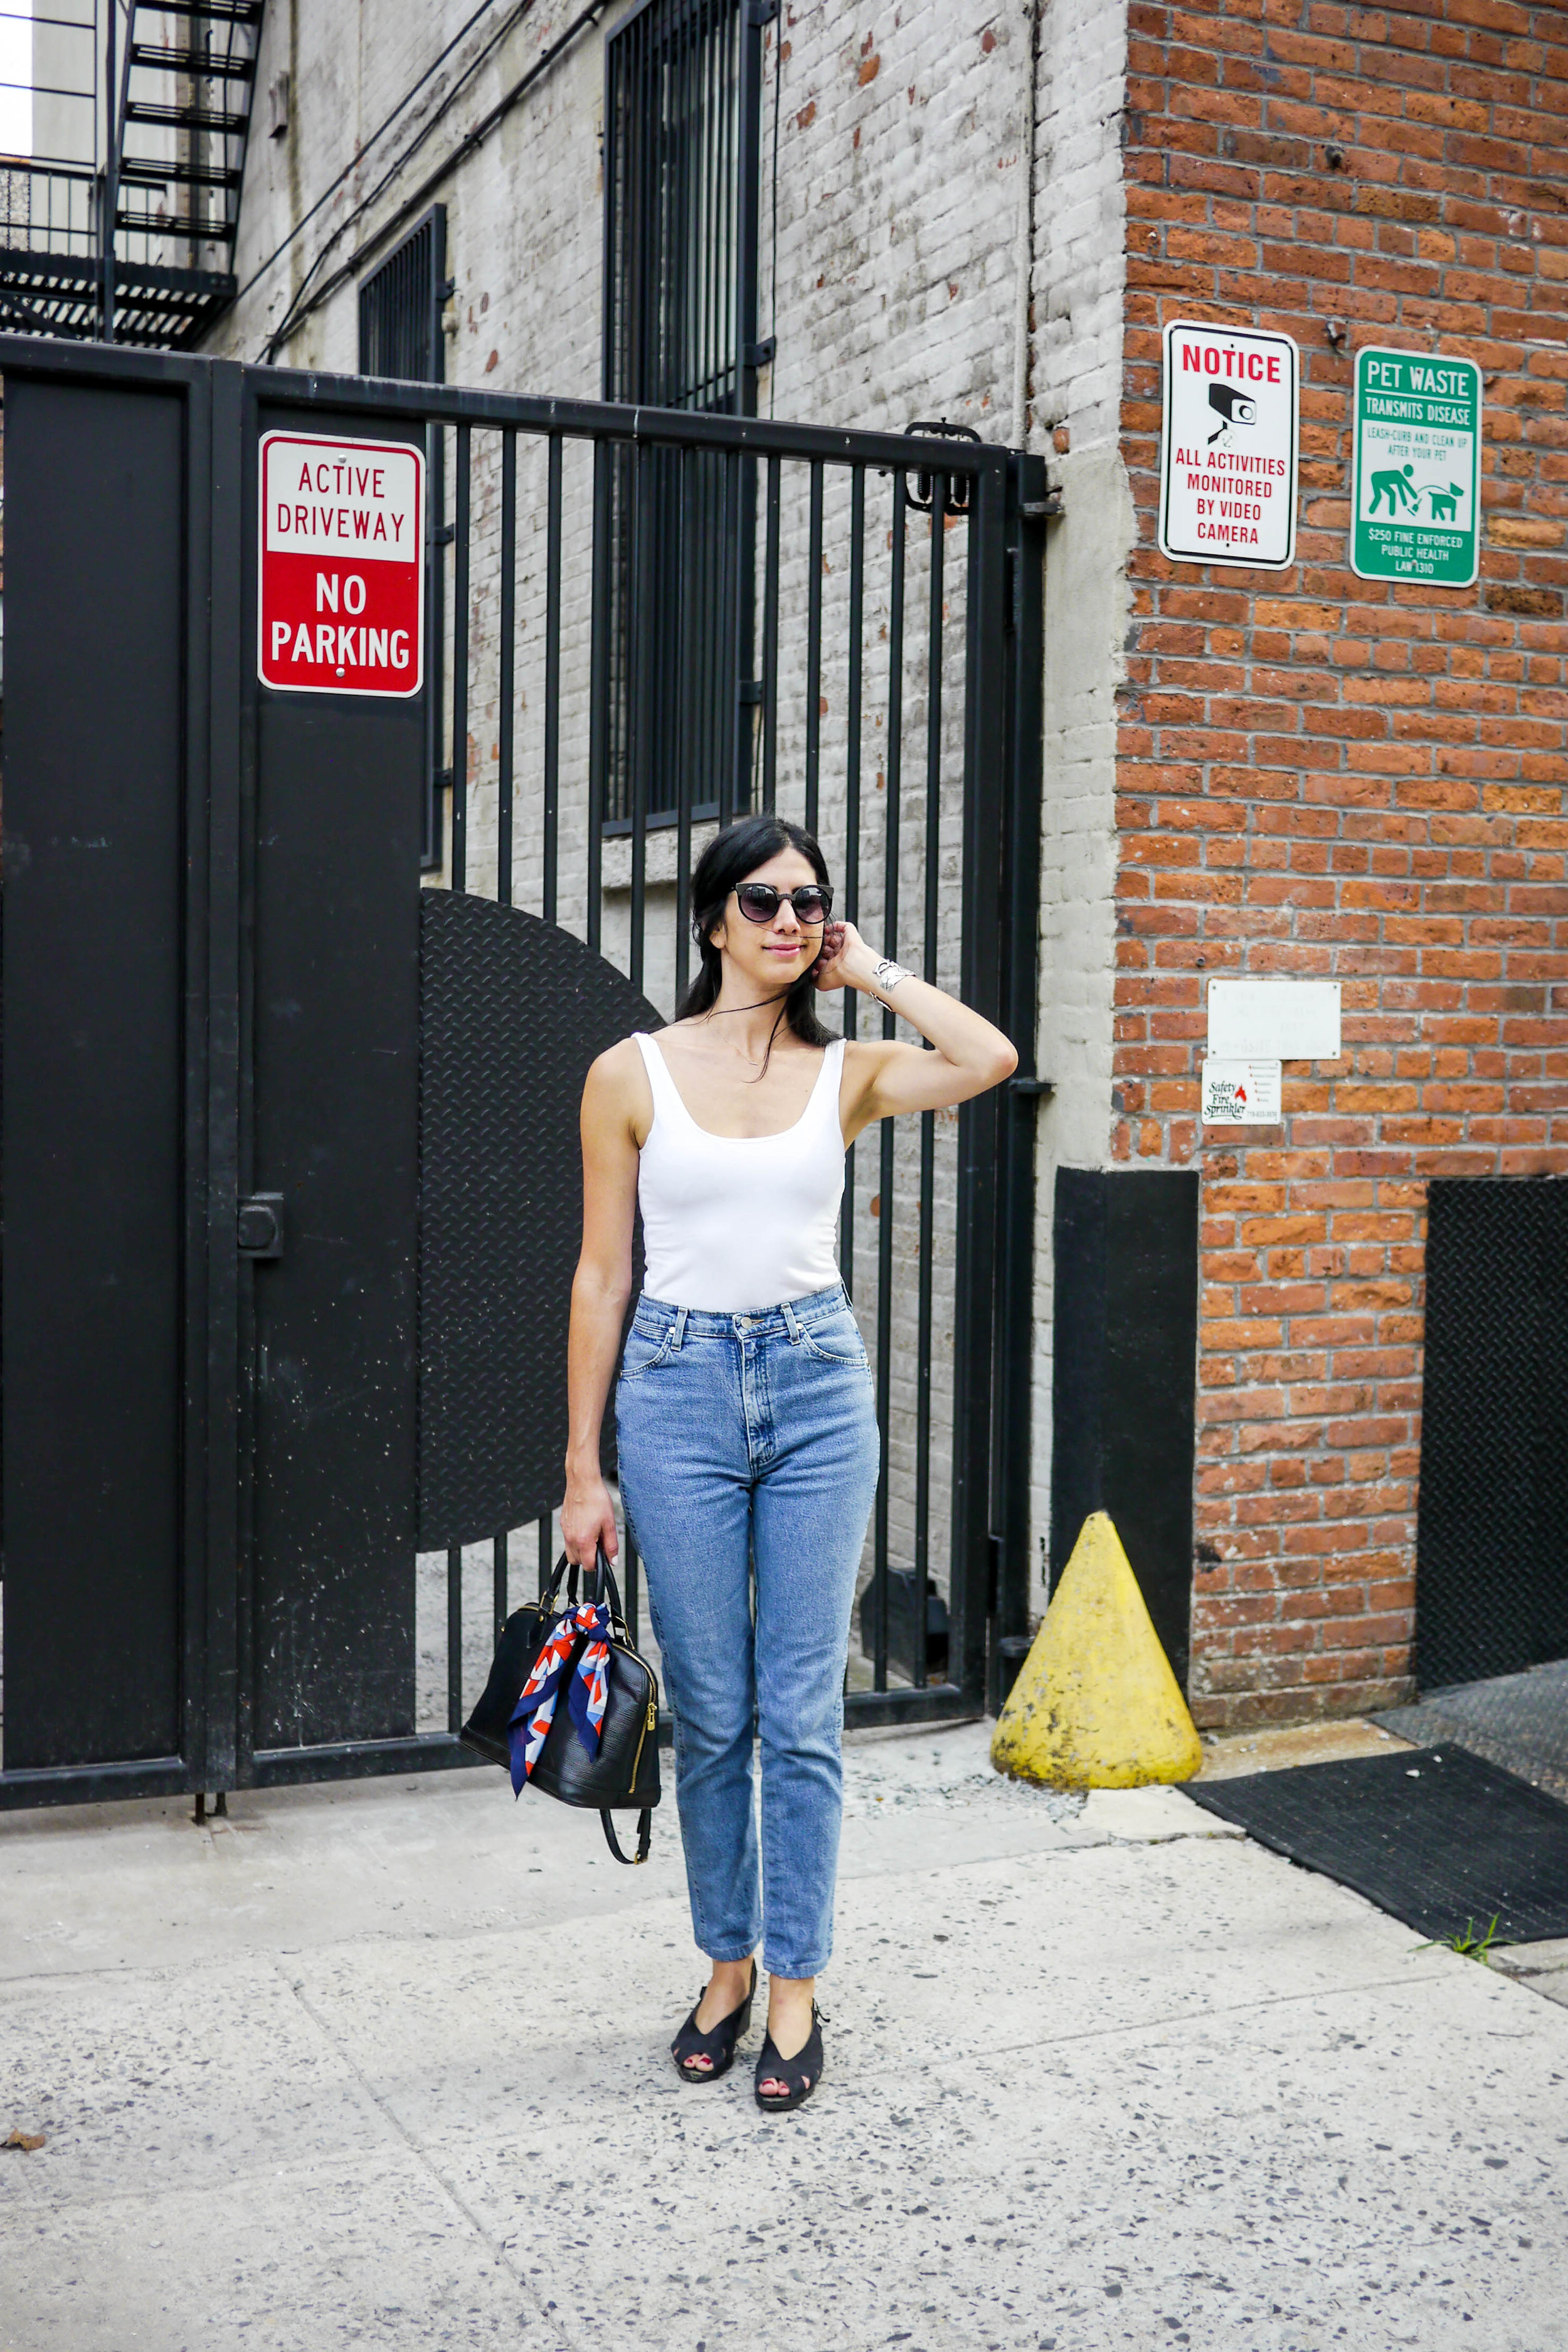 Top, American Apparel    ;    jeans, Wrangler    ;    bag, louis vuitton    ;    Scarf, Urban outfitters    ;    Necklace,  ADINA REYTER